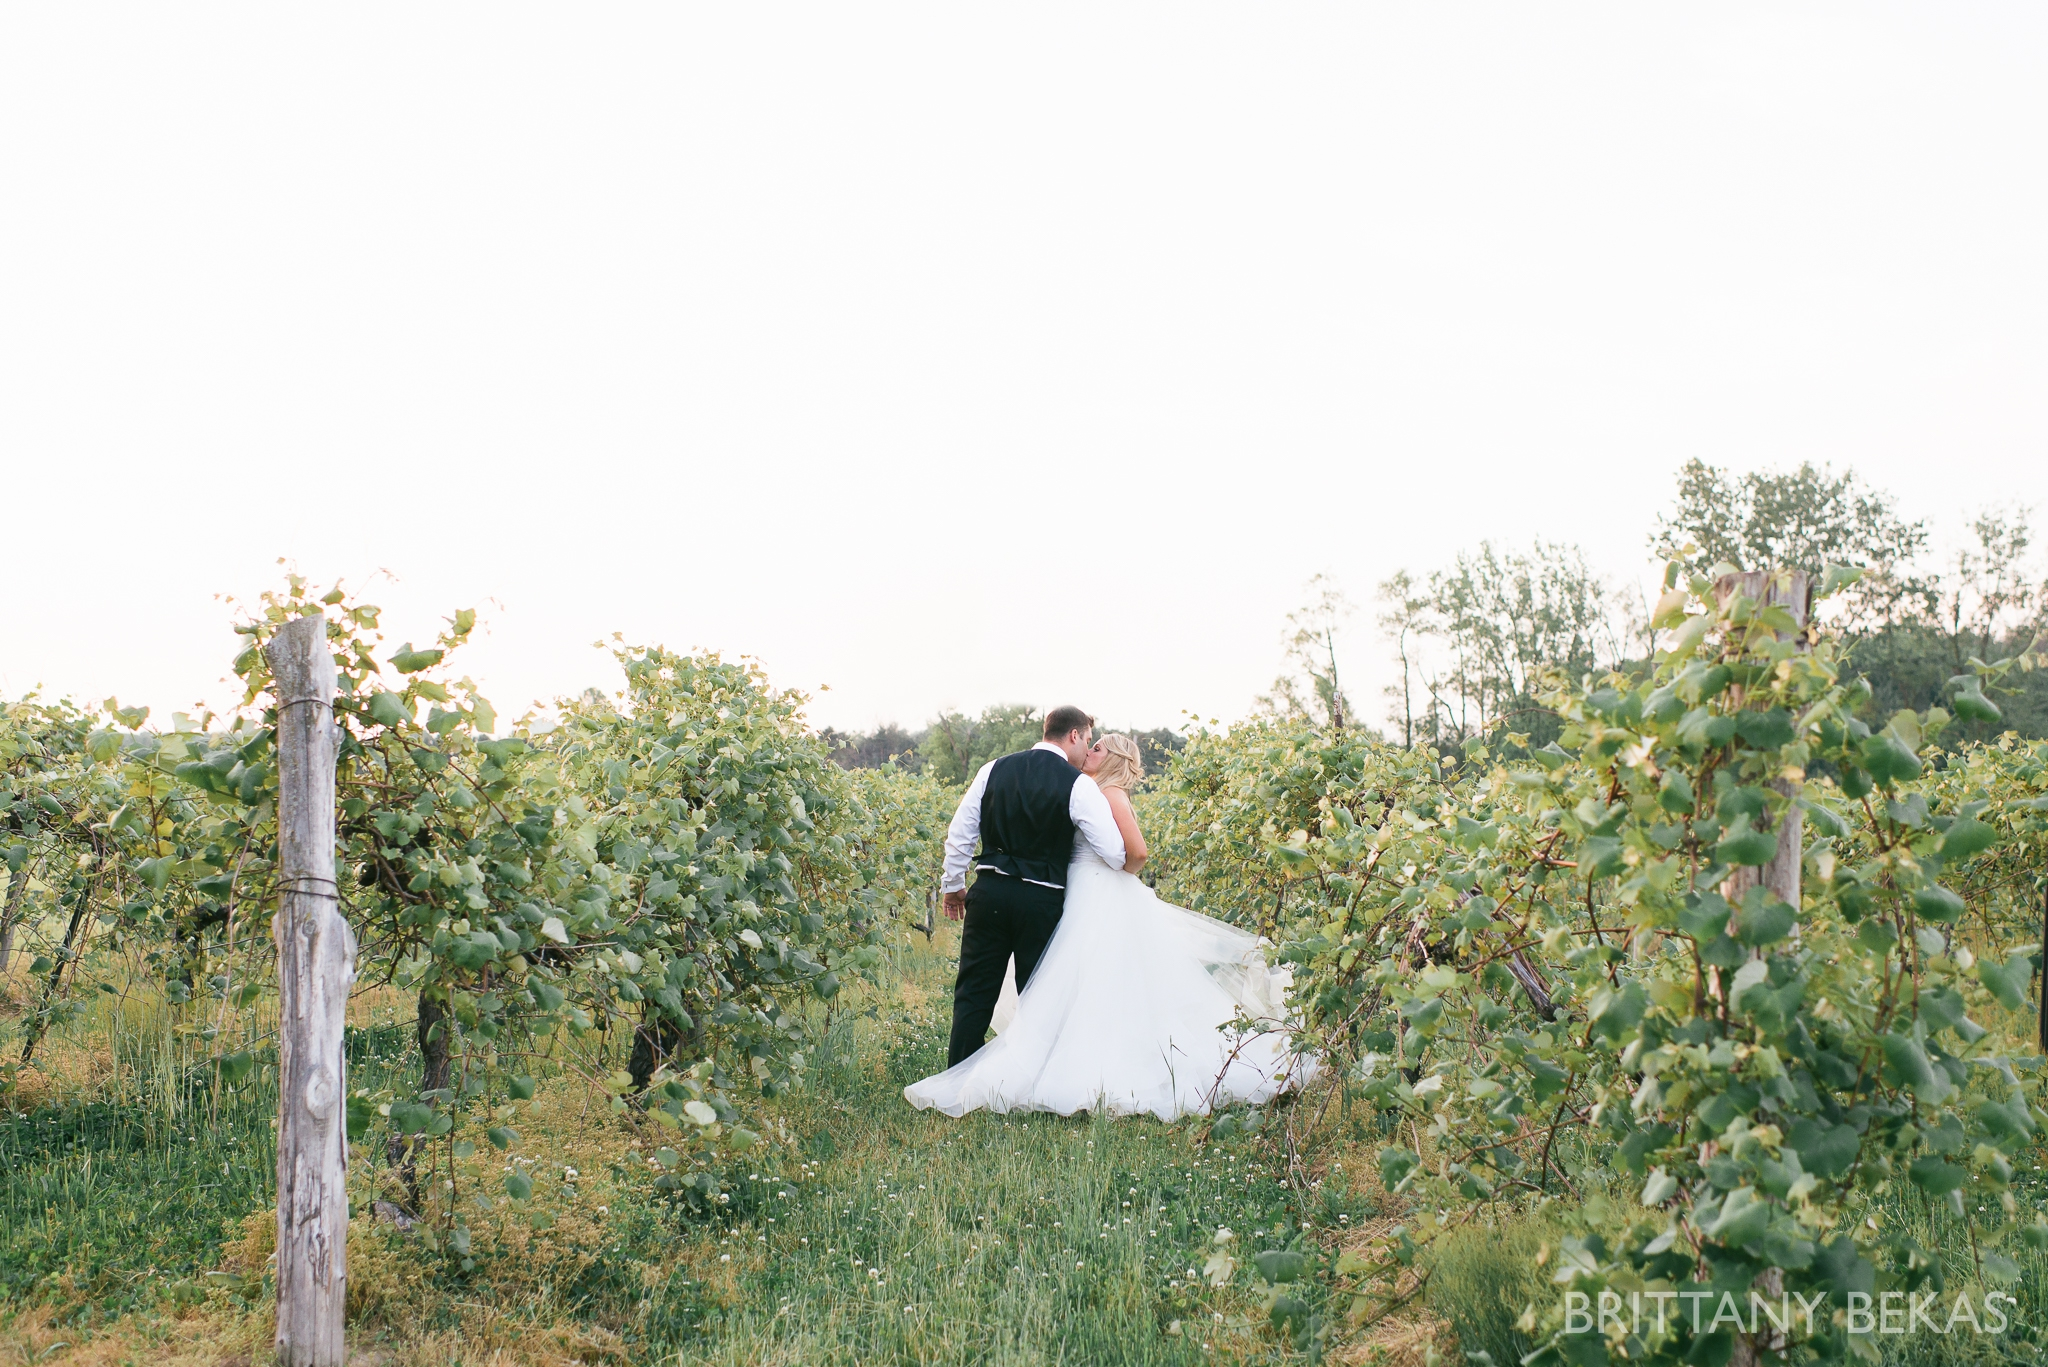 New Buffalo Wedding - Willow Harbor Vineyards Wedding Photos - Brittany Bekas Photography_0057